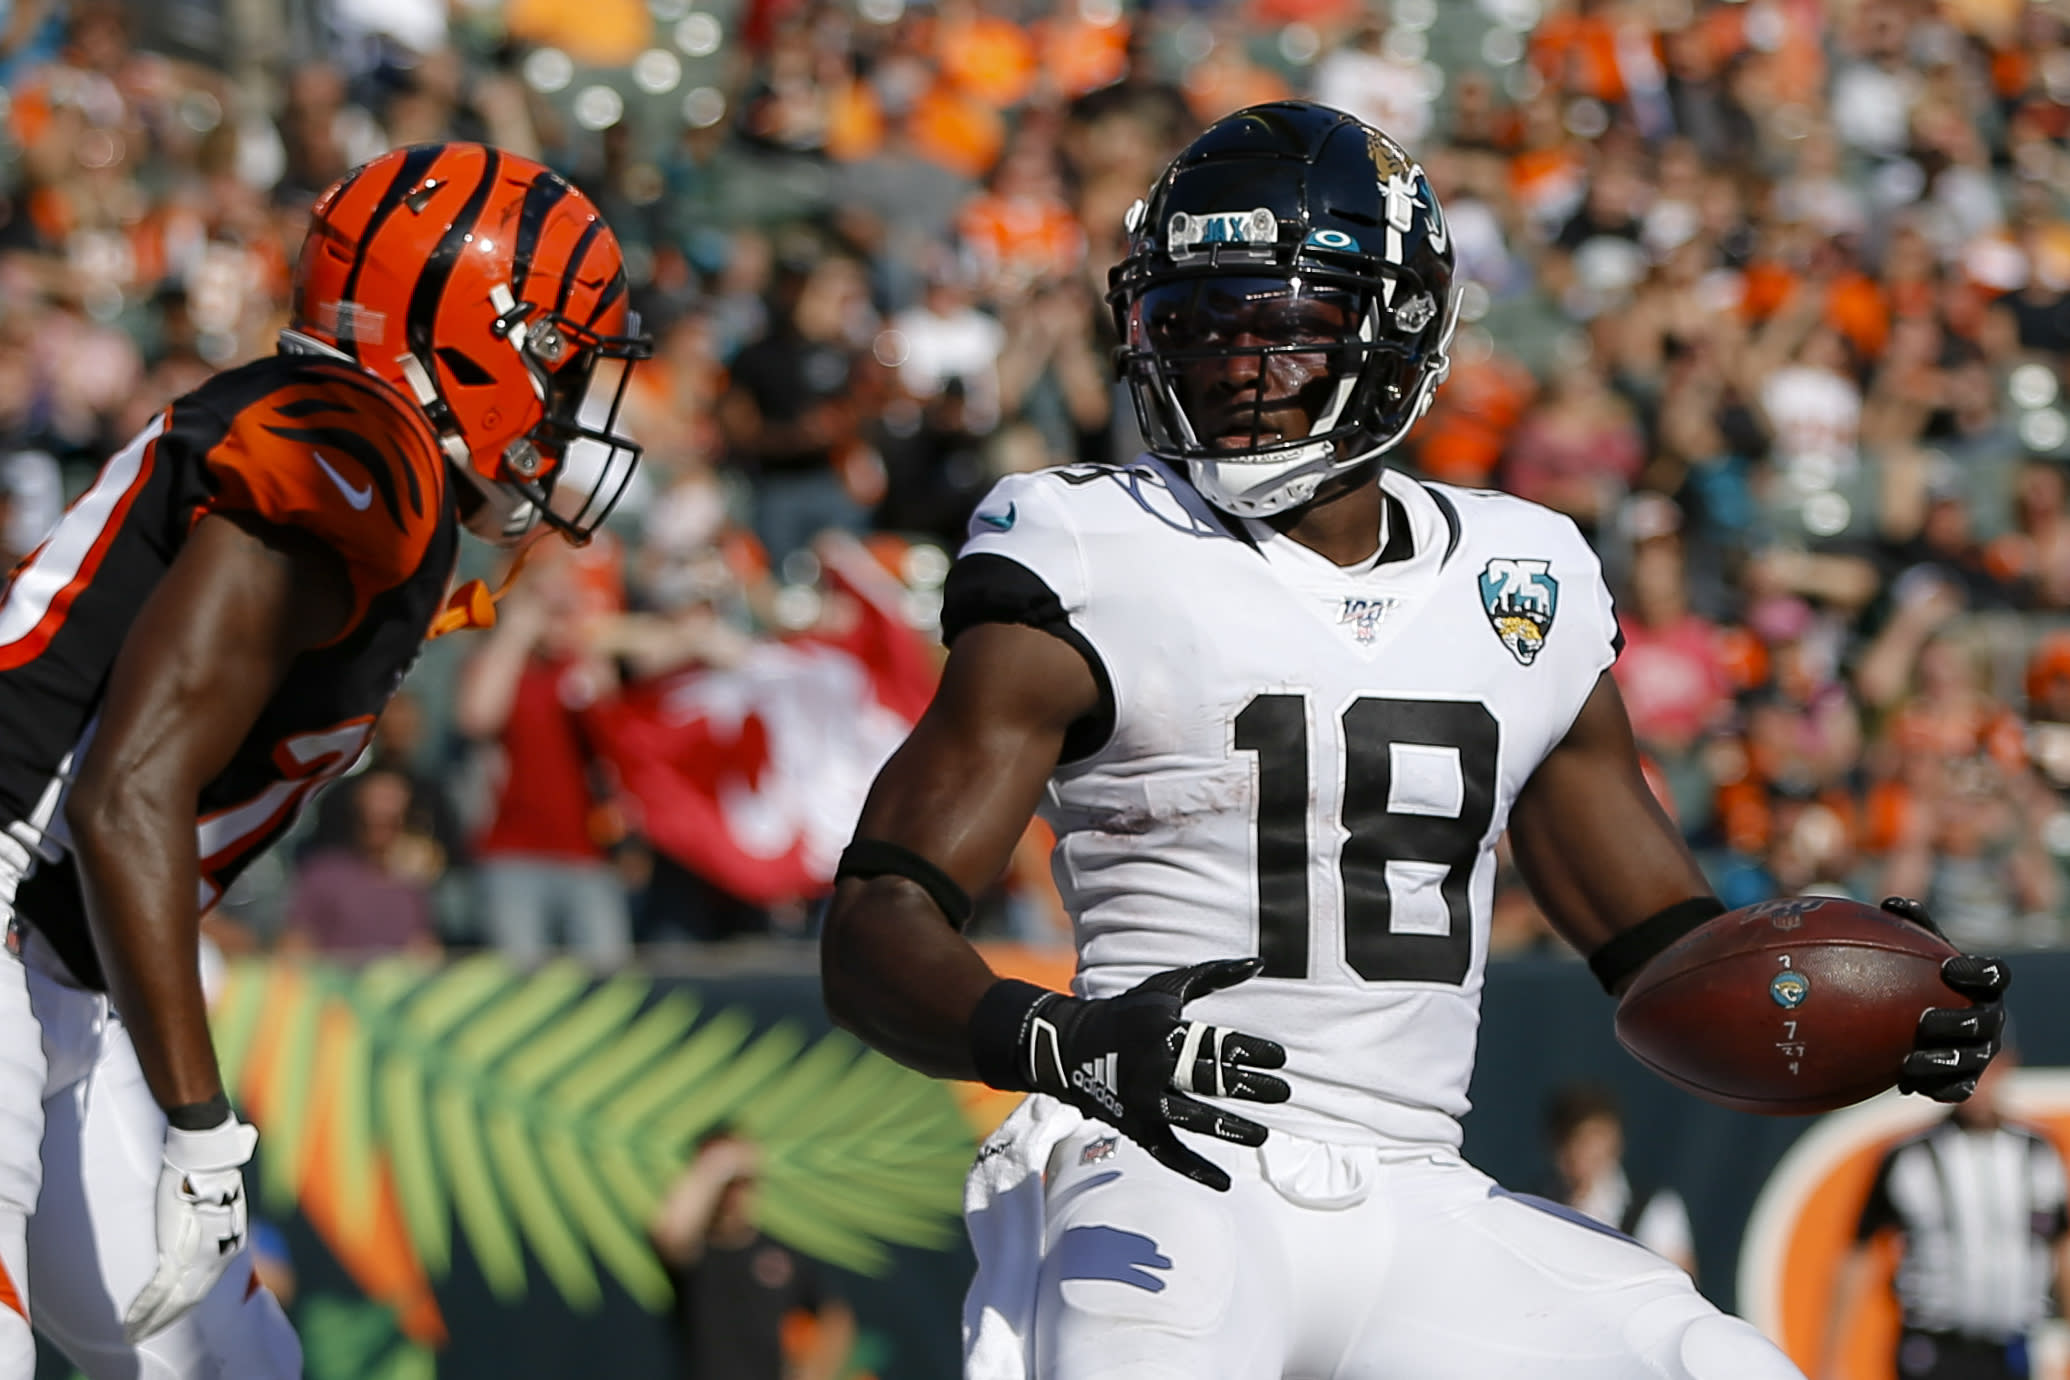 """FILE - In this Oct. 20, 2019, file file photo, Jacksonville Jaguars wide receiver Chris Conley (18) scores a 2-point conversation in the second half of the team's NFL football game against the Cincinnati Bengals in Cincinnati. Conley called on """"figures who are the face of the league"""" to do more to help fight social injustice. The sixth-year pro made it clear Thursday, Aug. 27, he was talking about the NFL's top quarterbacks, the ones who have the most influence in games, in locker rooms and in communities. Think Tom Brady, Drew Brees, Patrick Mahomes, Deshaun Watson, Russell Wilson and Lamar Jackson, for starters. (AP Photo/Frank Victores, File)"""